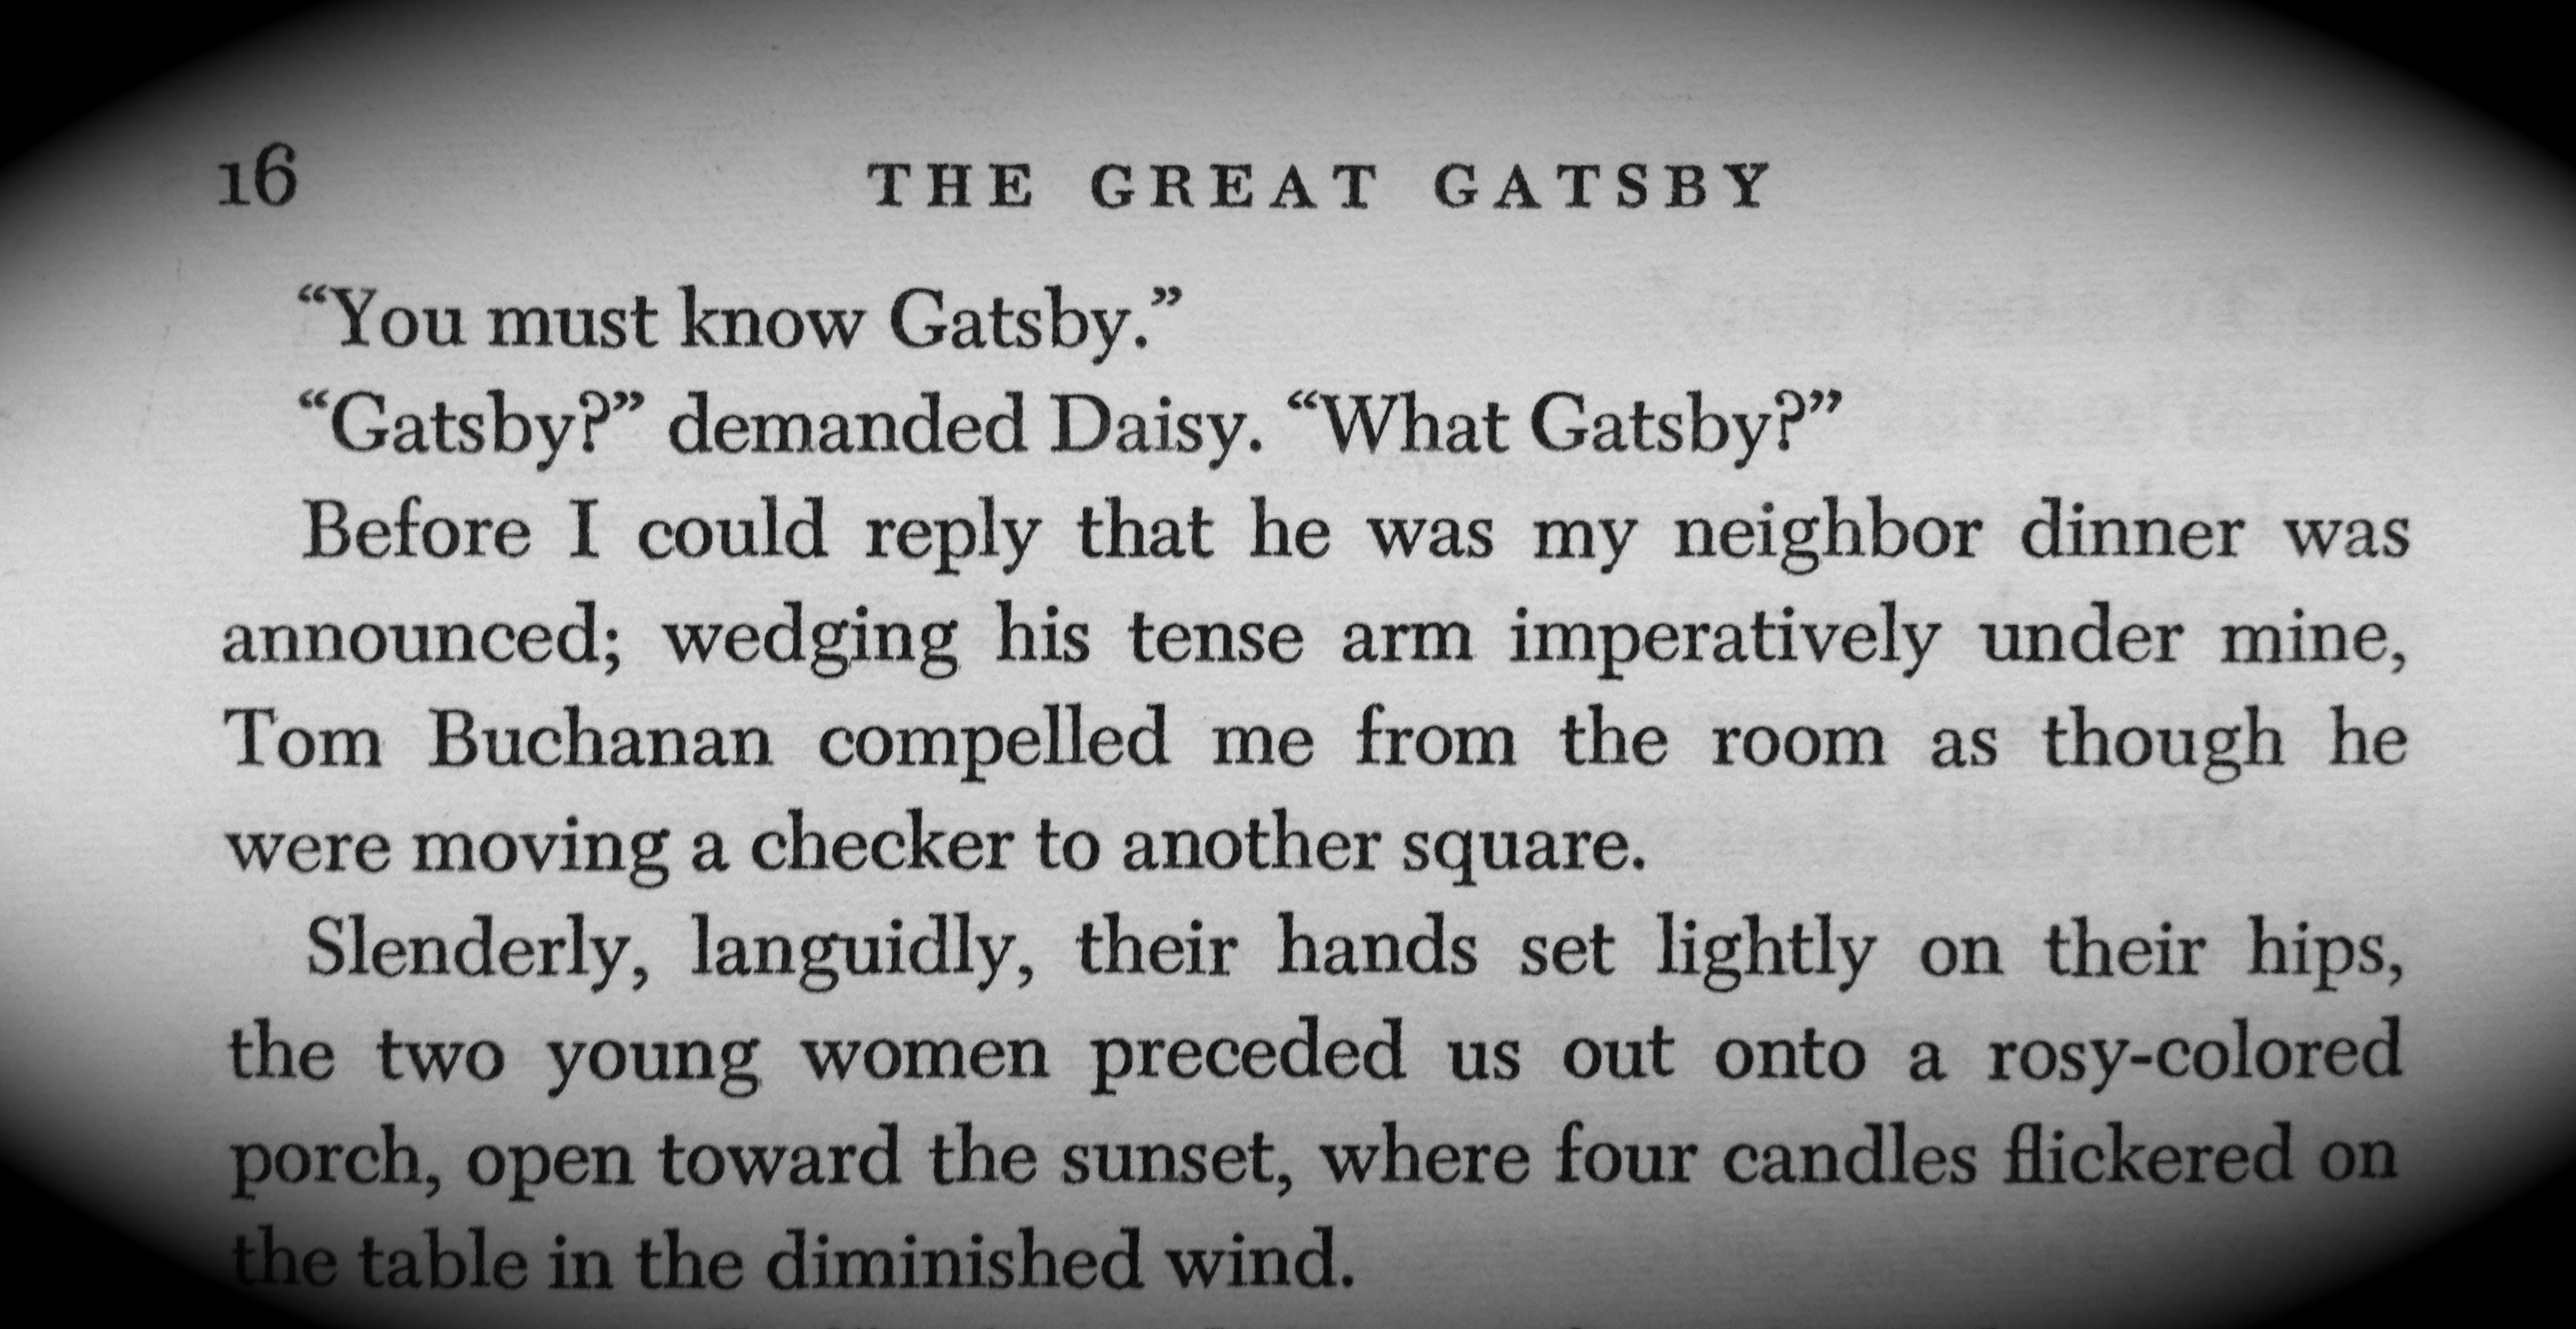 gatsby party scene importance essay The great gatsby and baz luhrmann's adaptation techniques (media analysis essay) the importance of violence and how a hyperbolic party scenes.